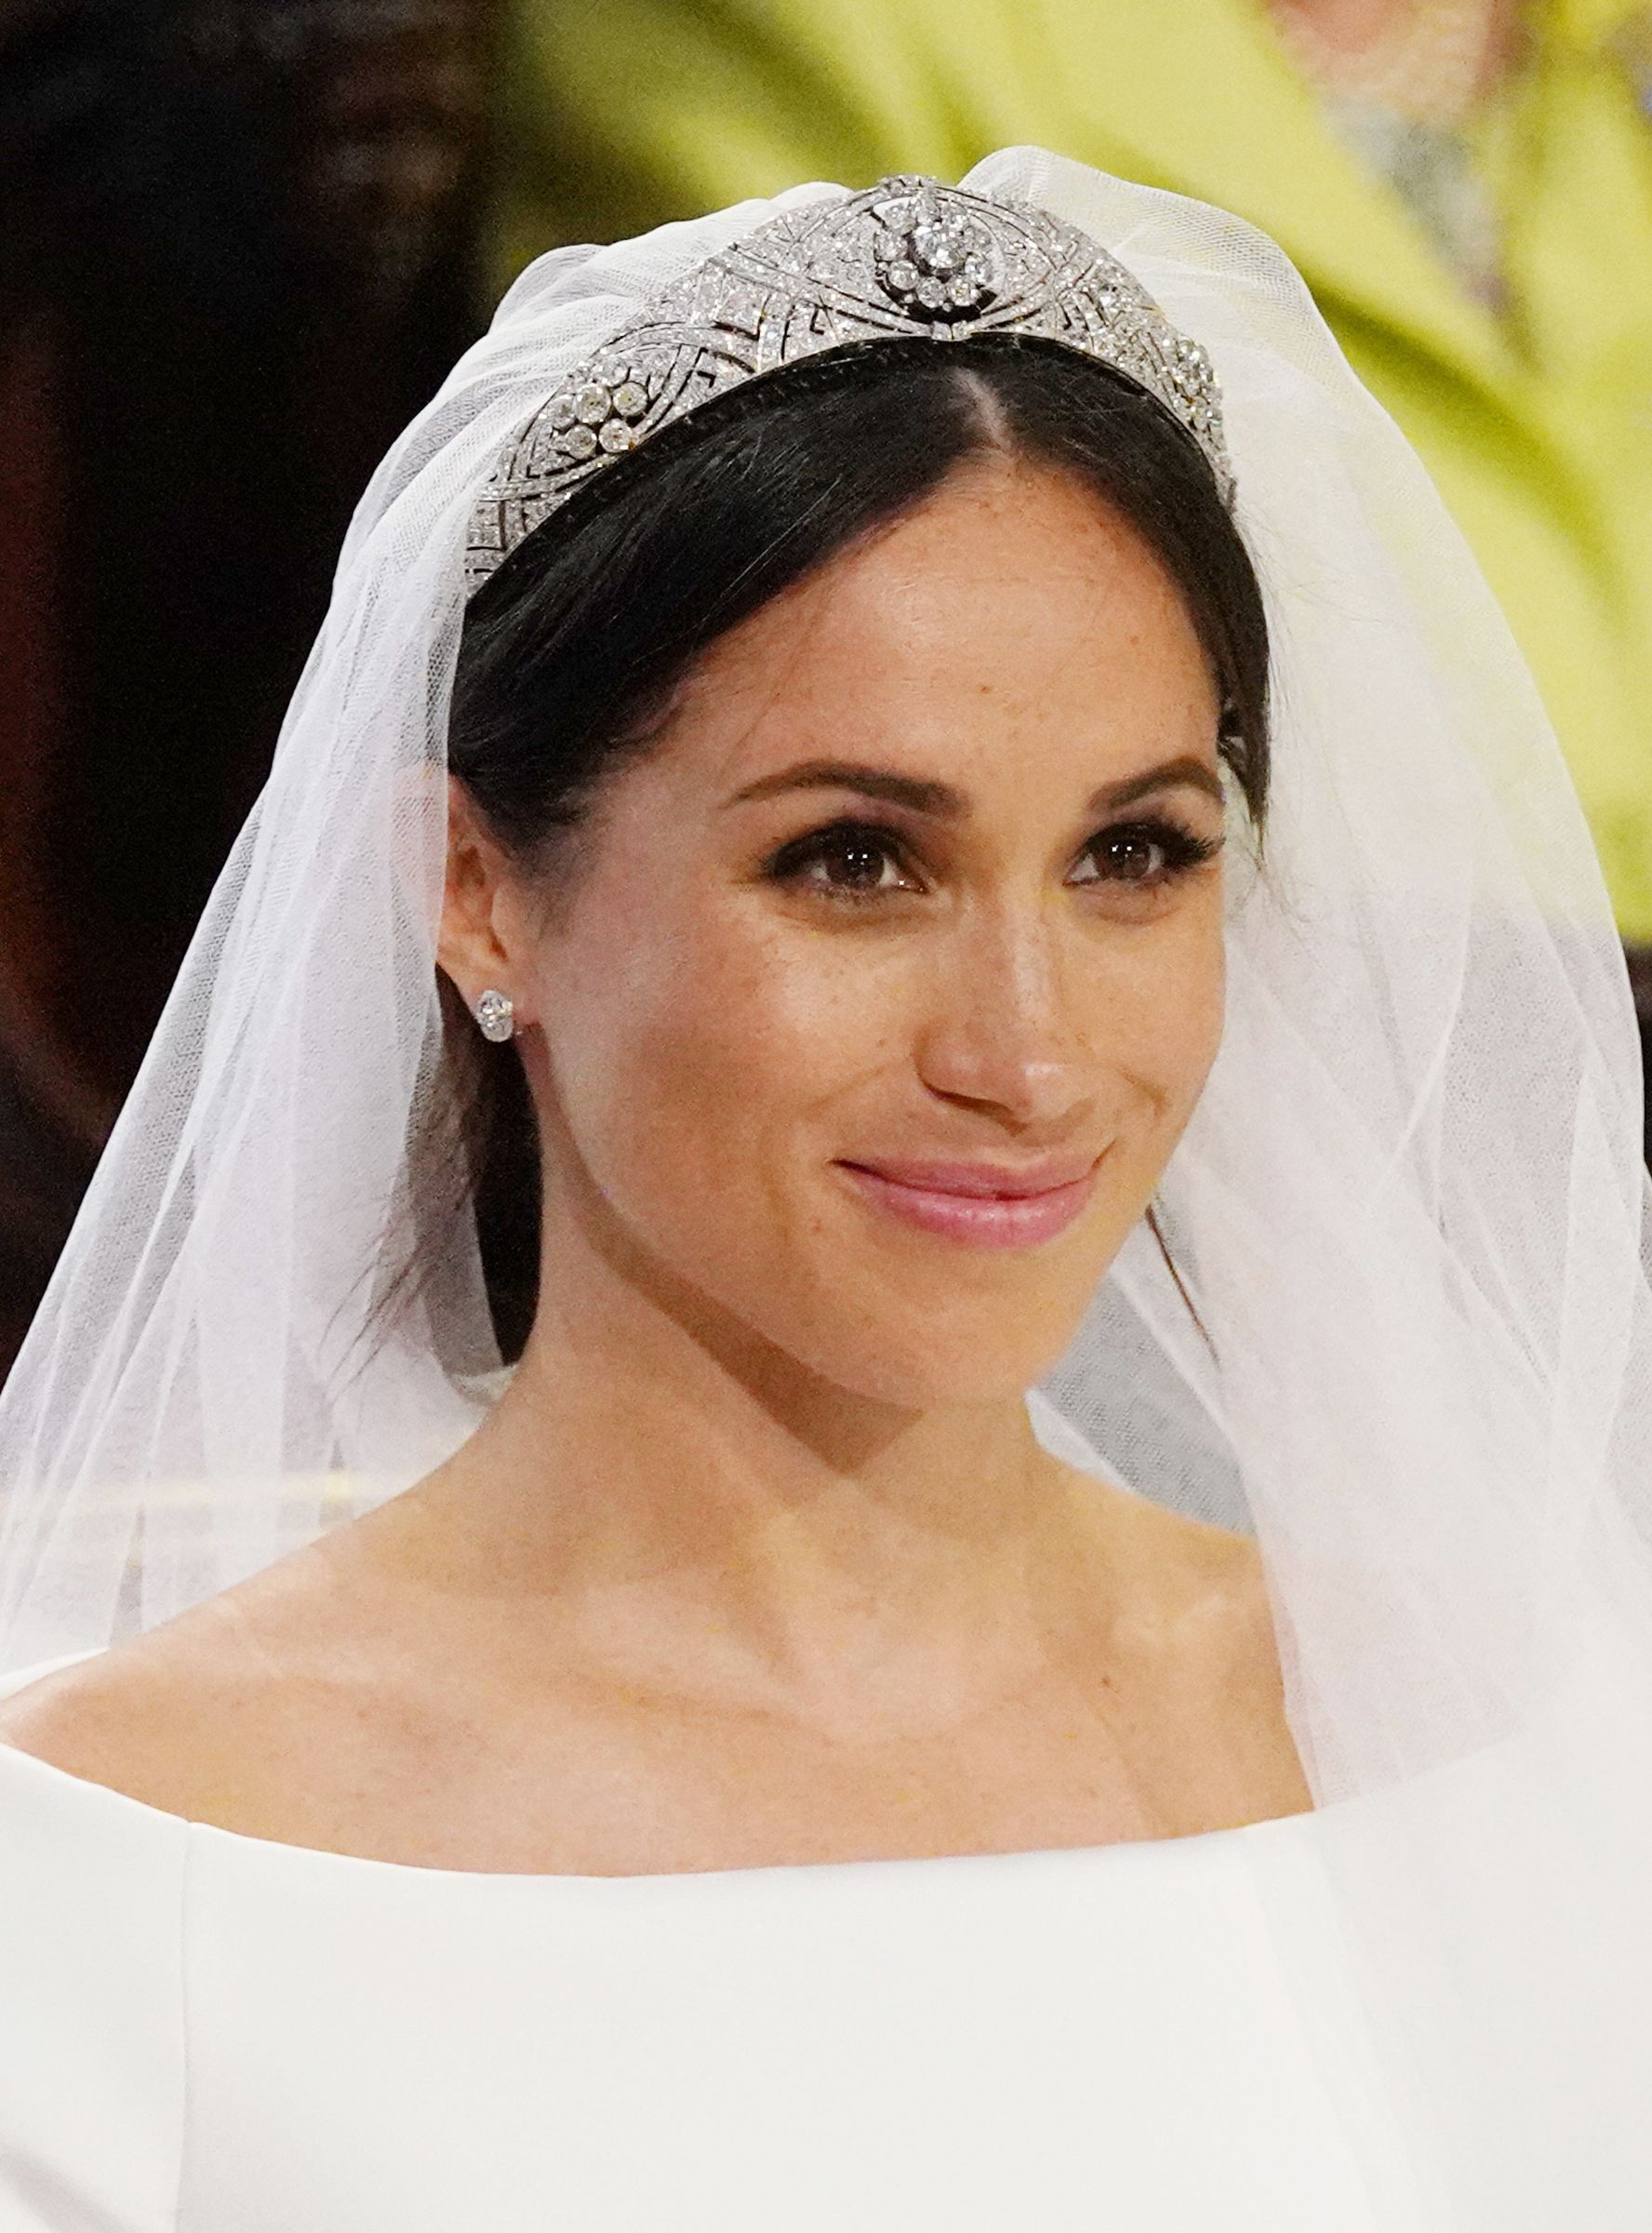 We Finally Know Where Meghan Markle Found Inspiration For Her Wedding Makeup Wedding Day Makeup Wedding Makeup Natural Wedding Makeup